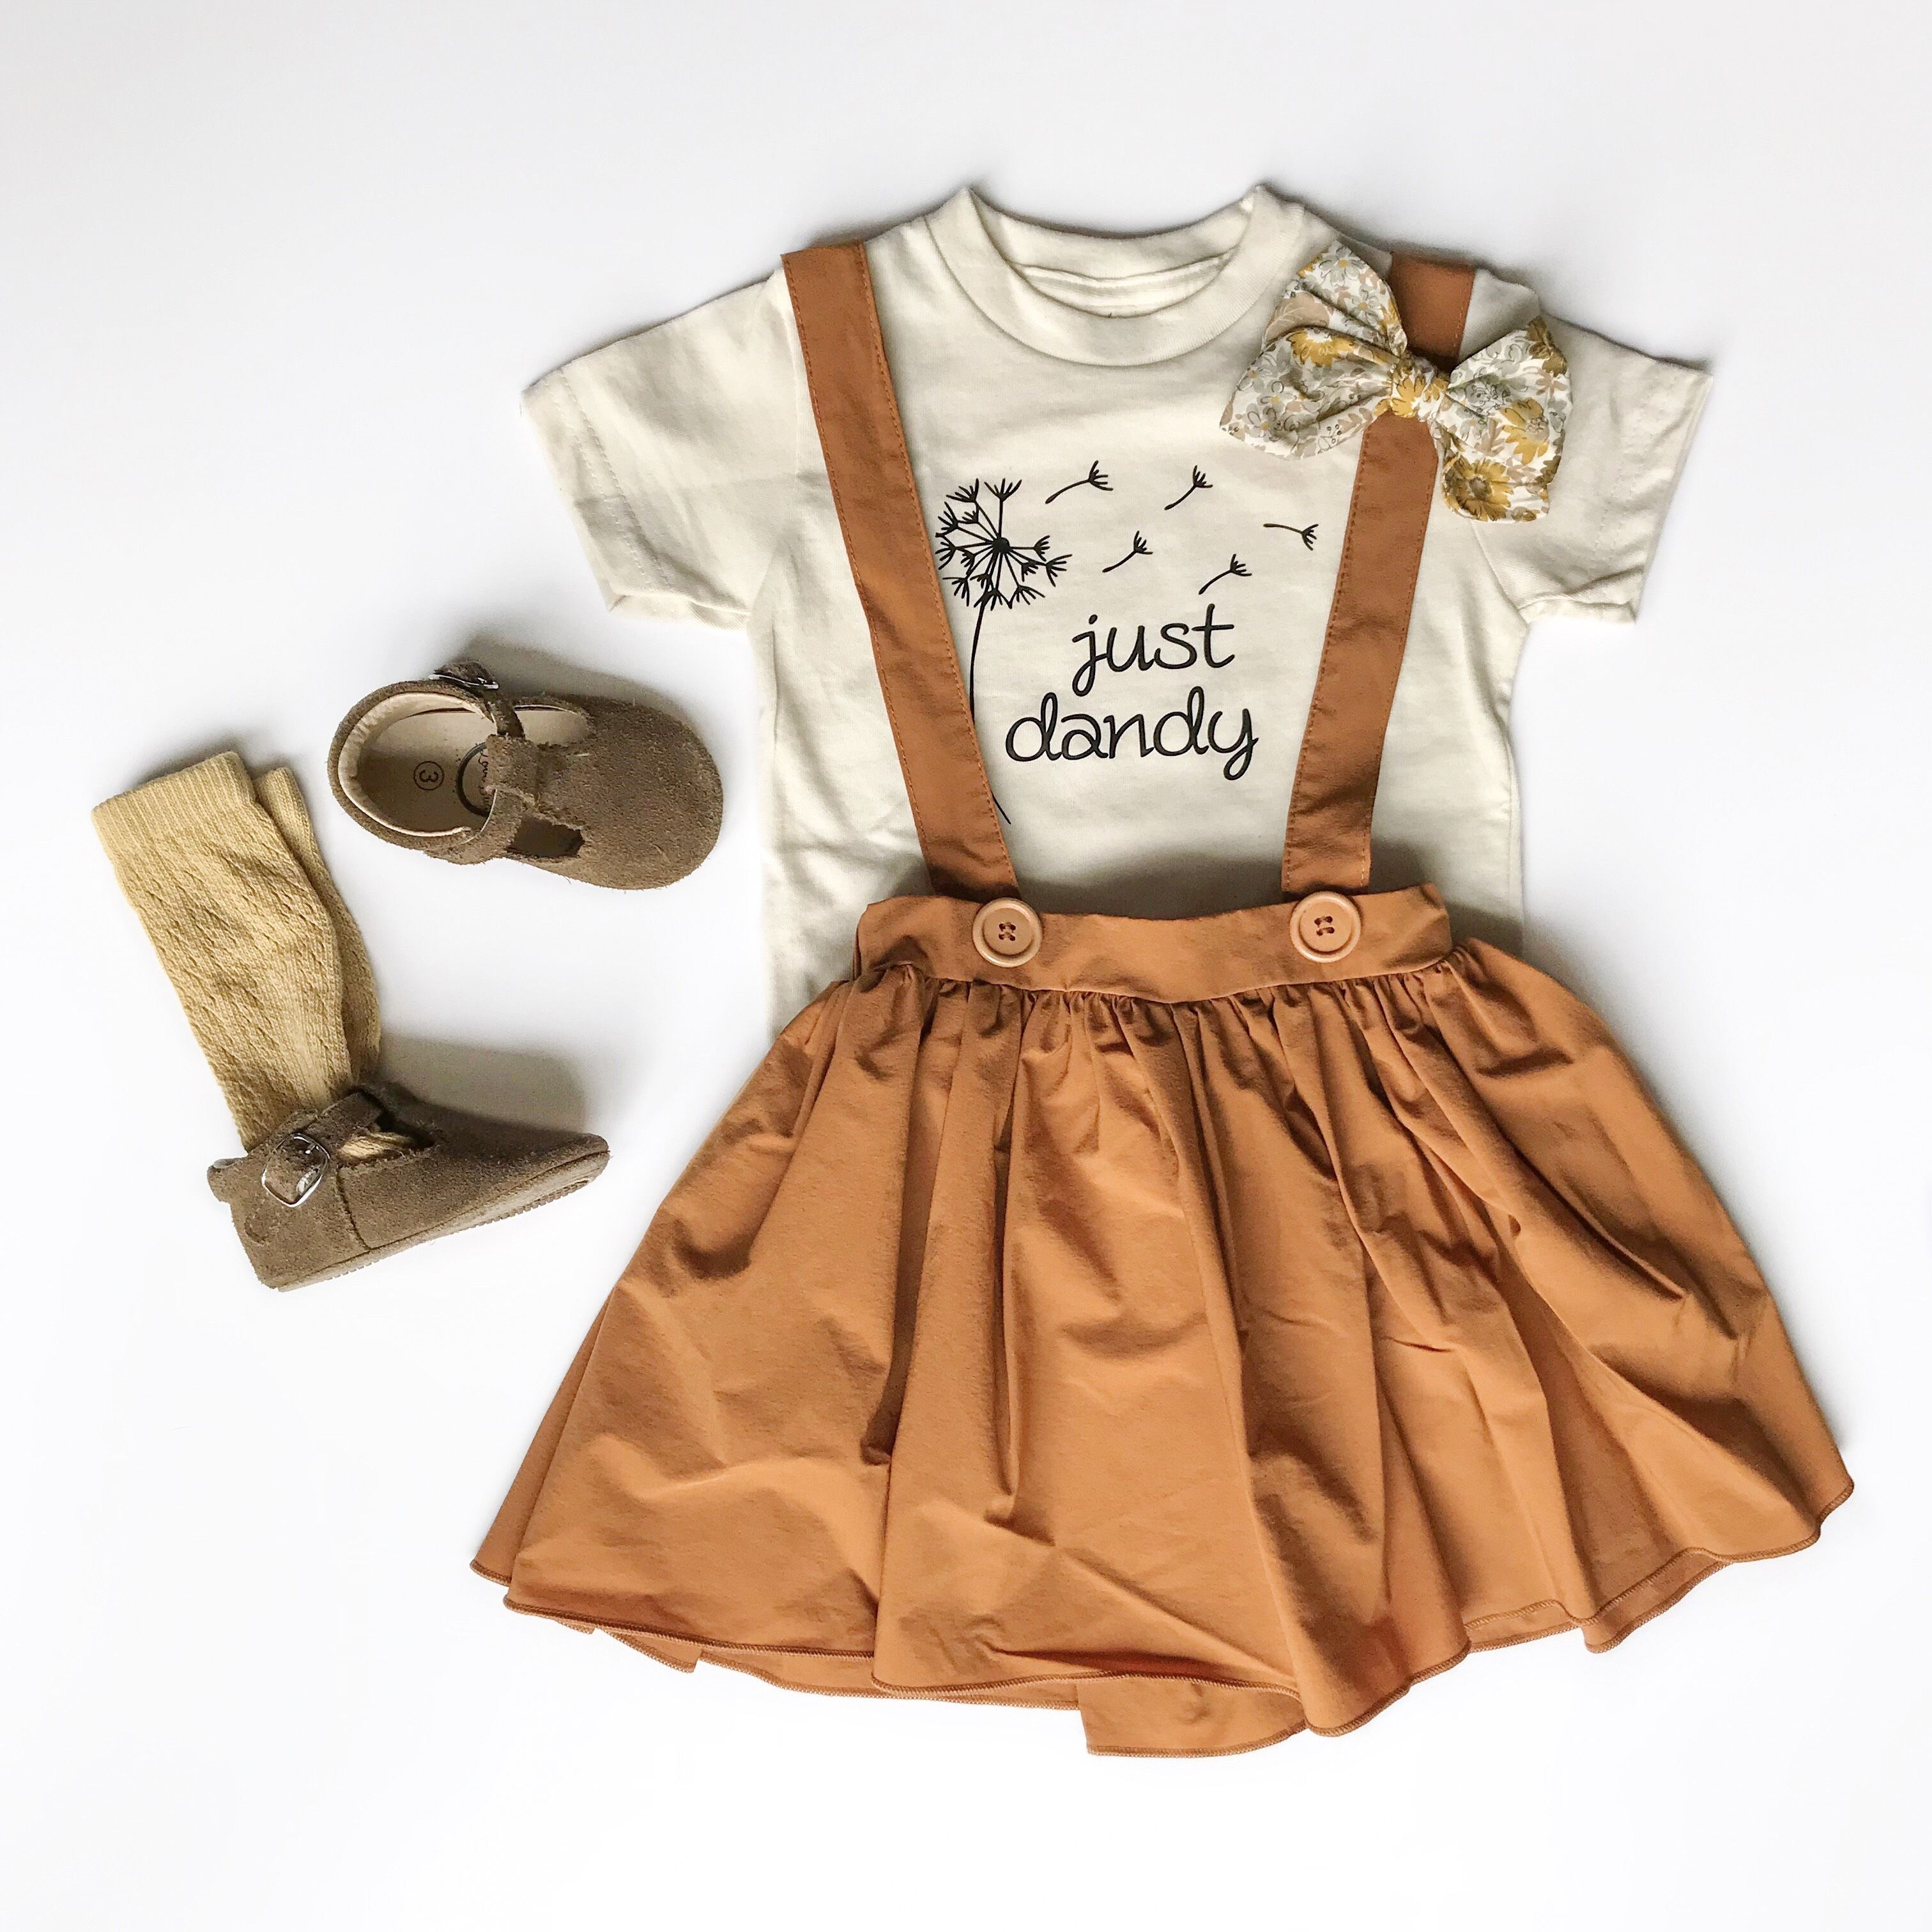 Pin on Baby And Toddler Fashion